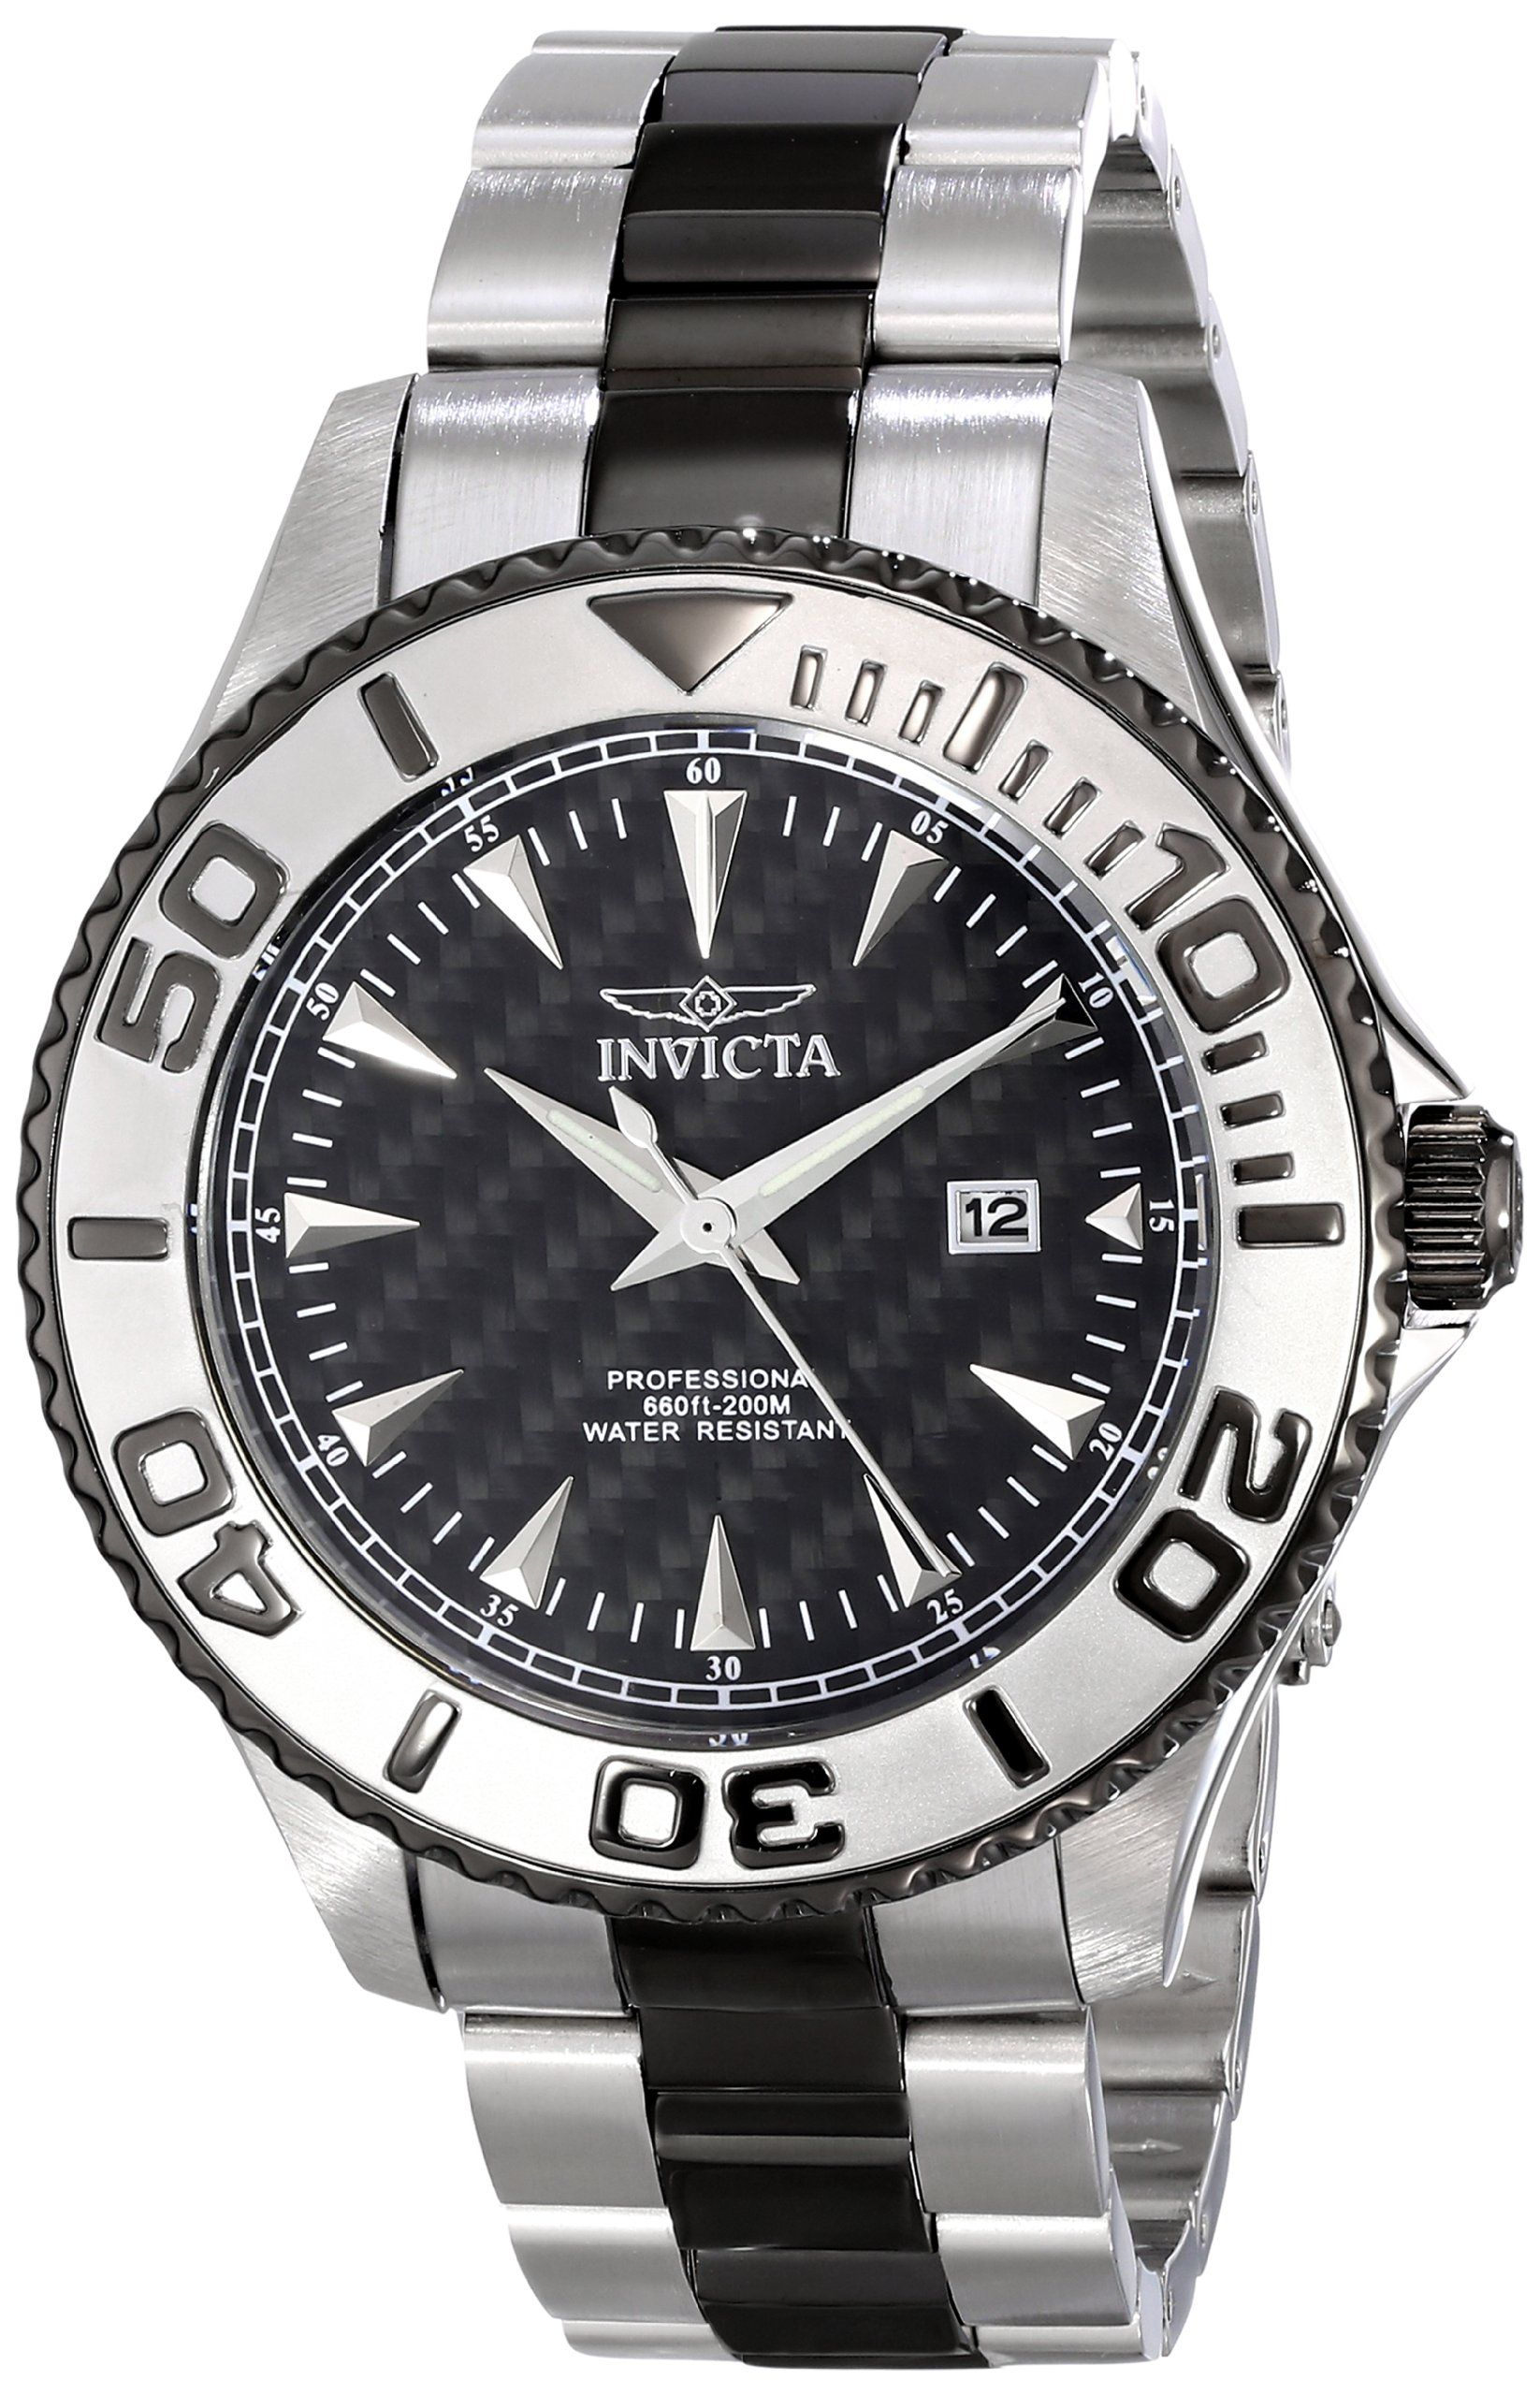 Invicta menus pro diver analog display japanese quartz two